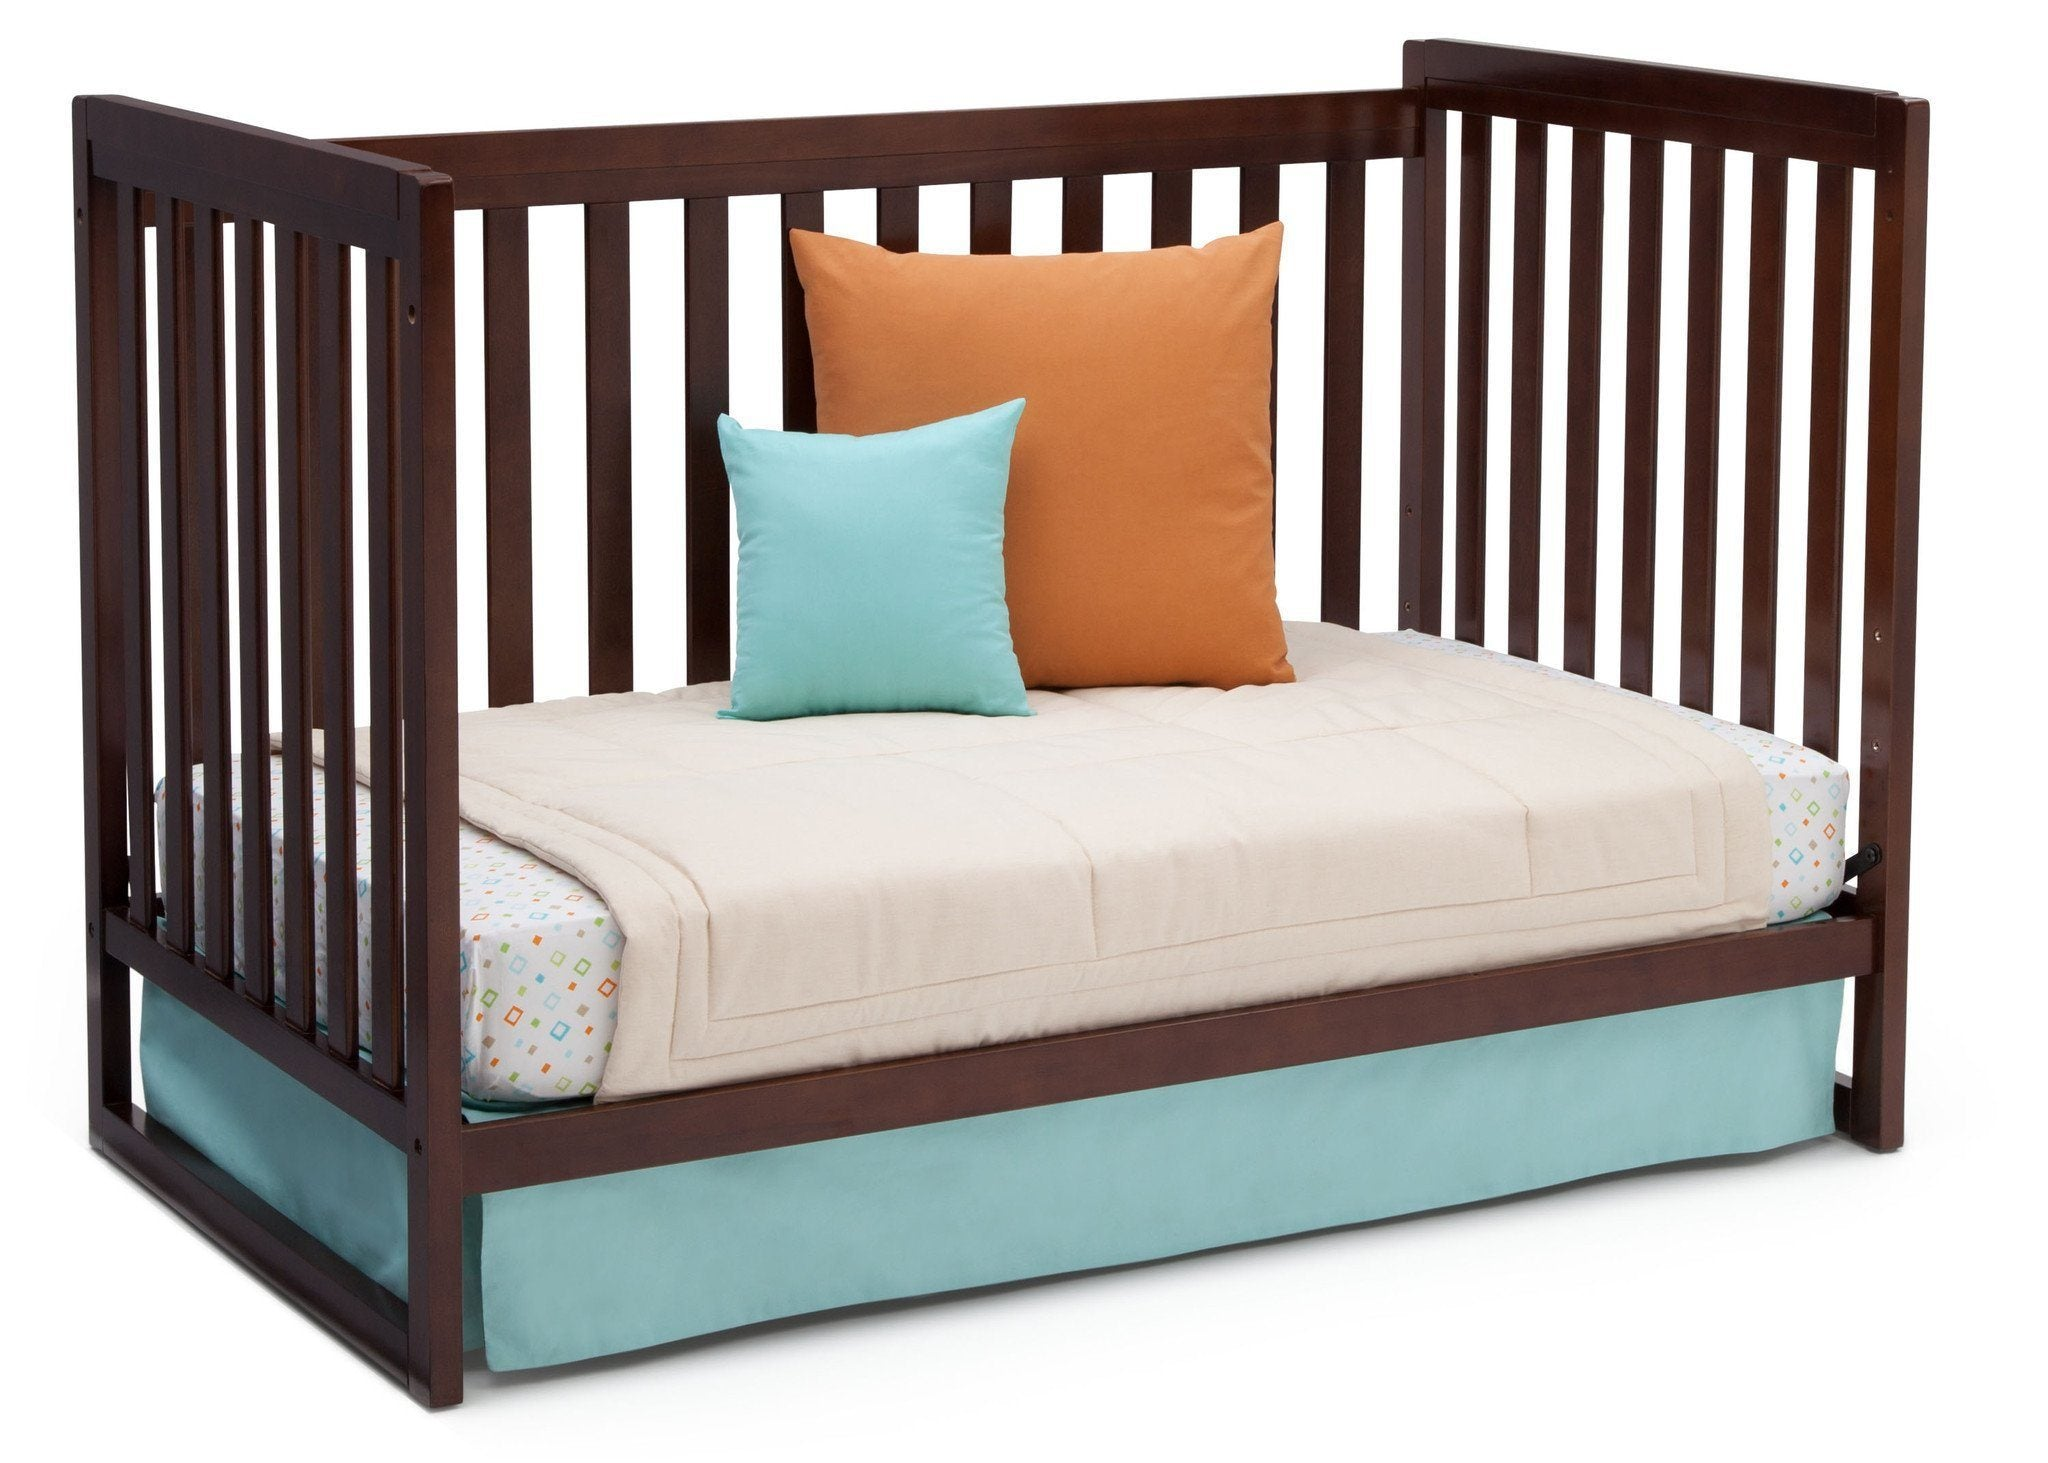 Delta Children Chocolate (204) Urban Classic 3-in-1 Crib, Day Bed Conversion b6b